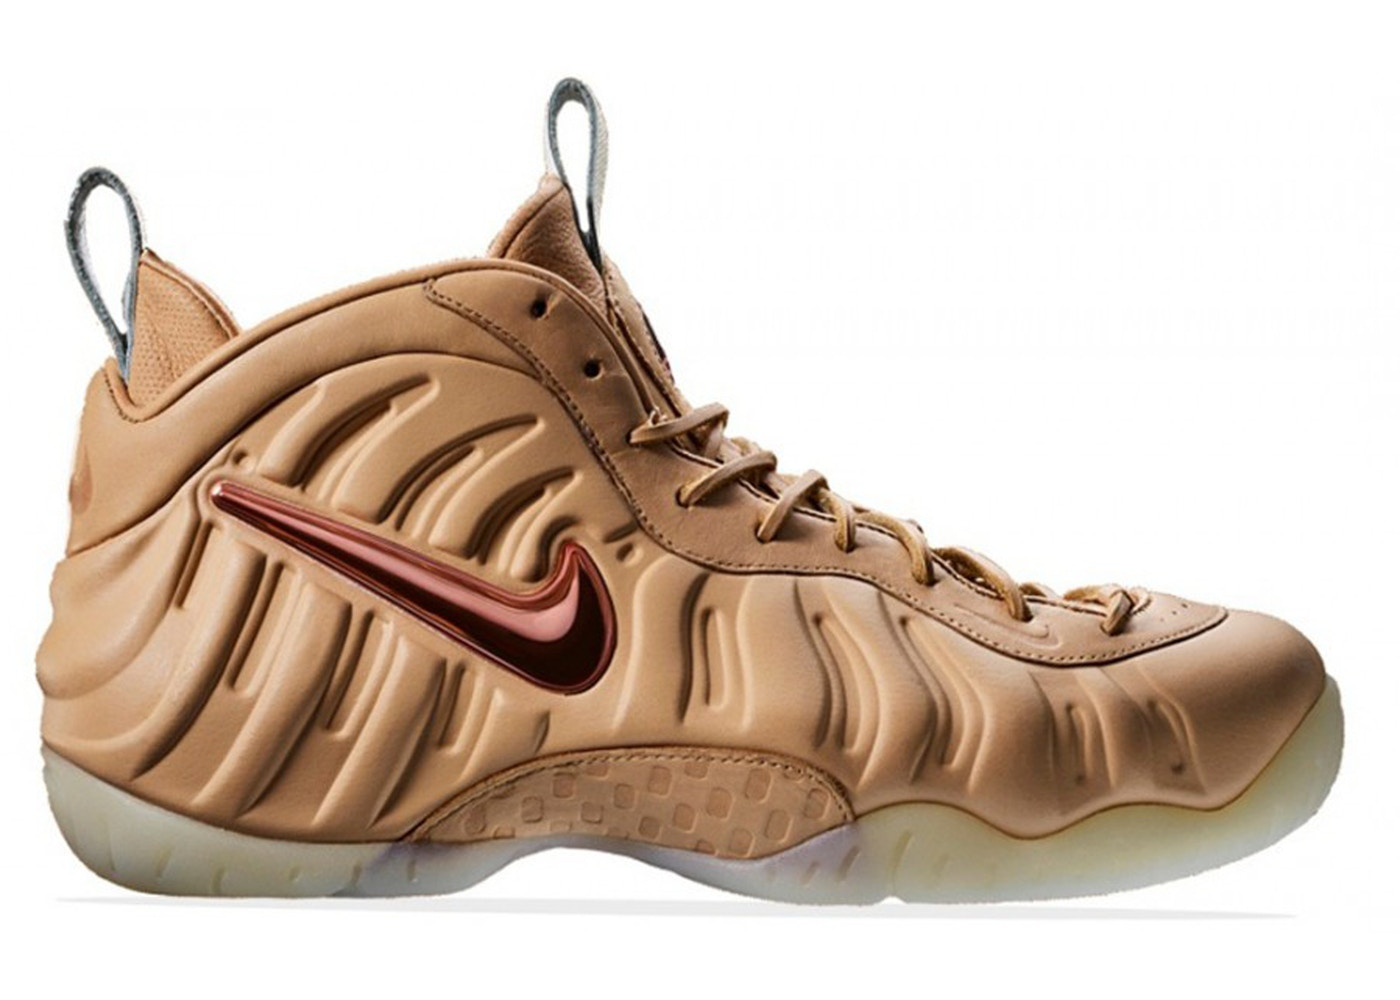 0a168b811c78 Air Foamposite Pro Vachetta Tan - 920377-200